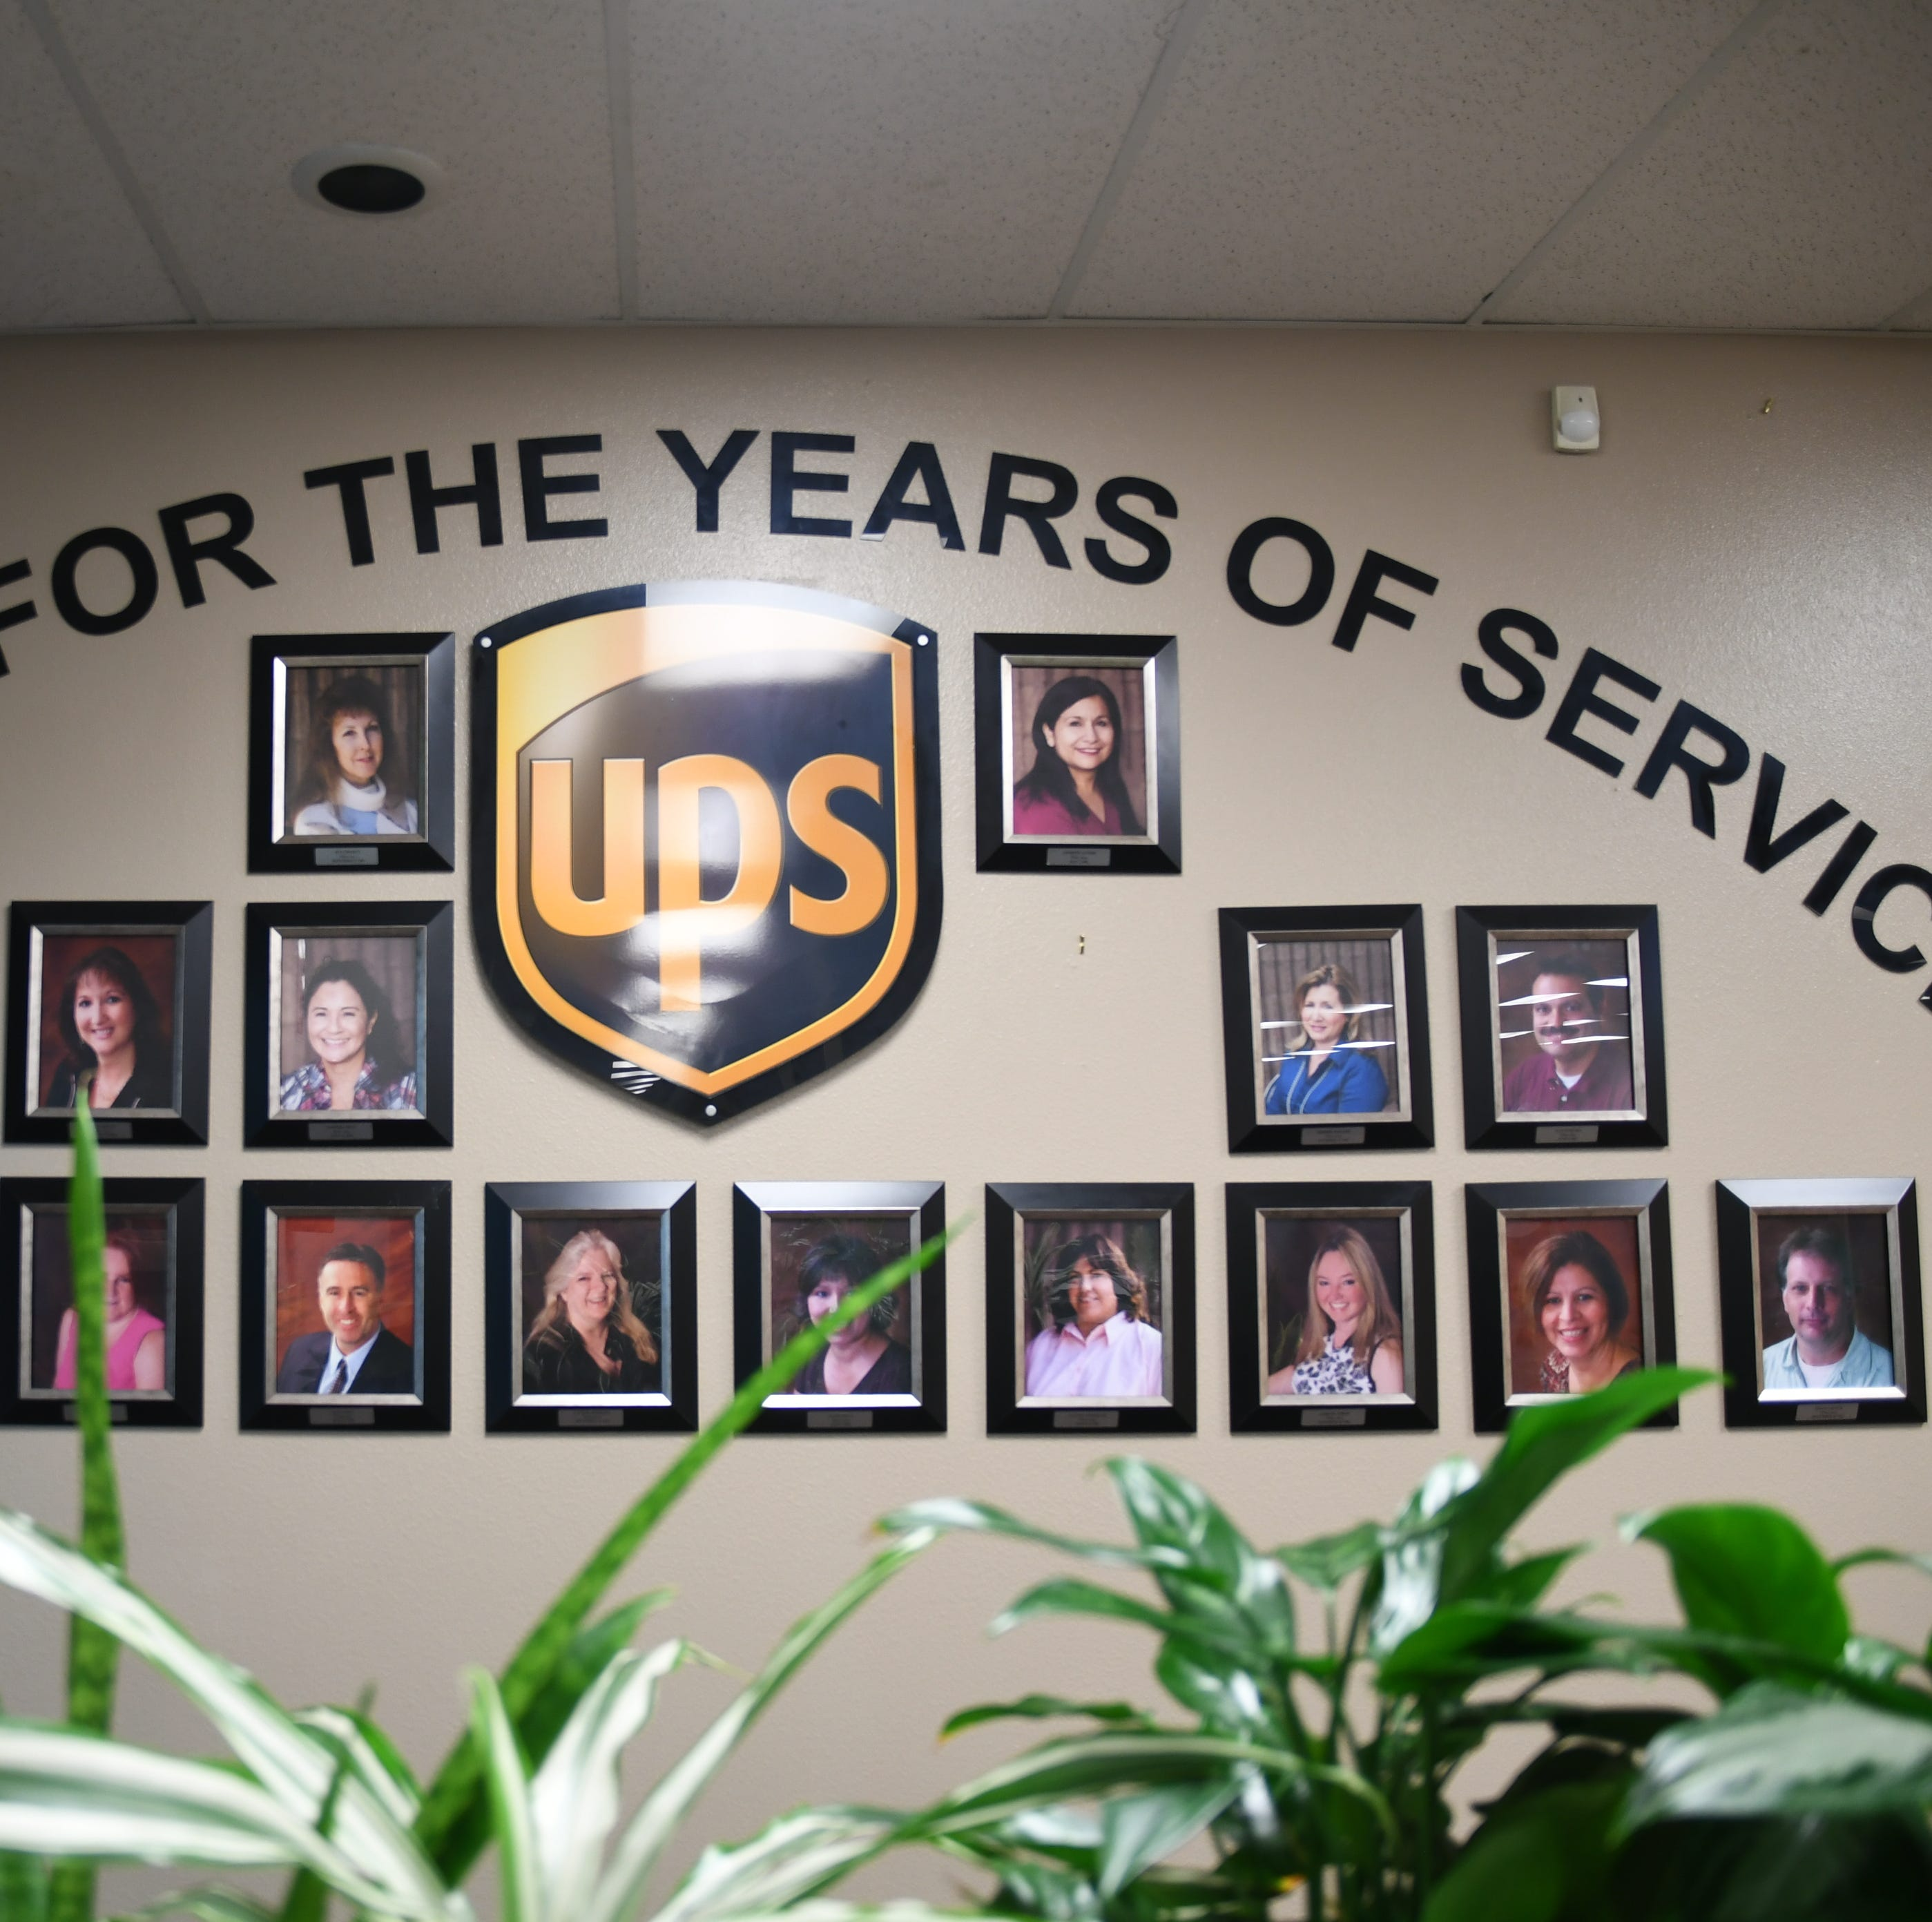 Long-standing Visalia UPS office to close in April, leaving dozens jobless